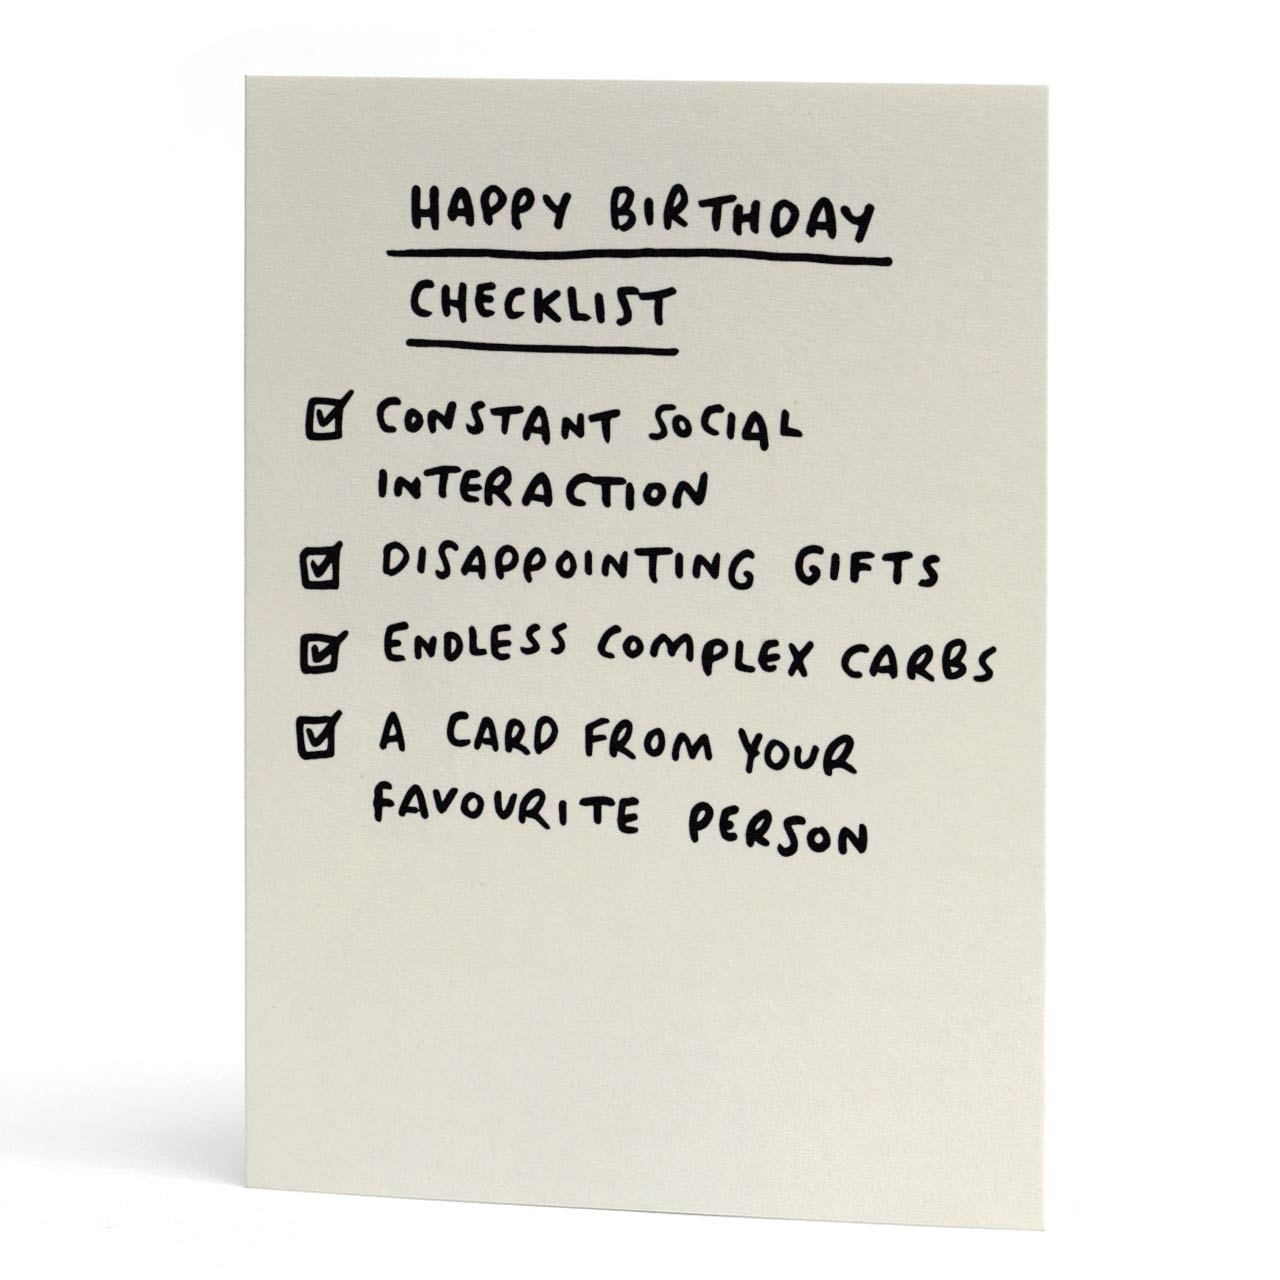 Happy Birthday Checklist Card